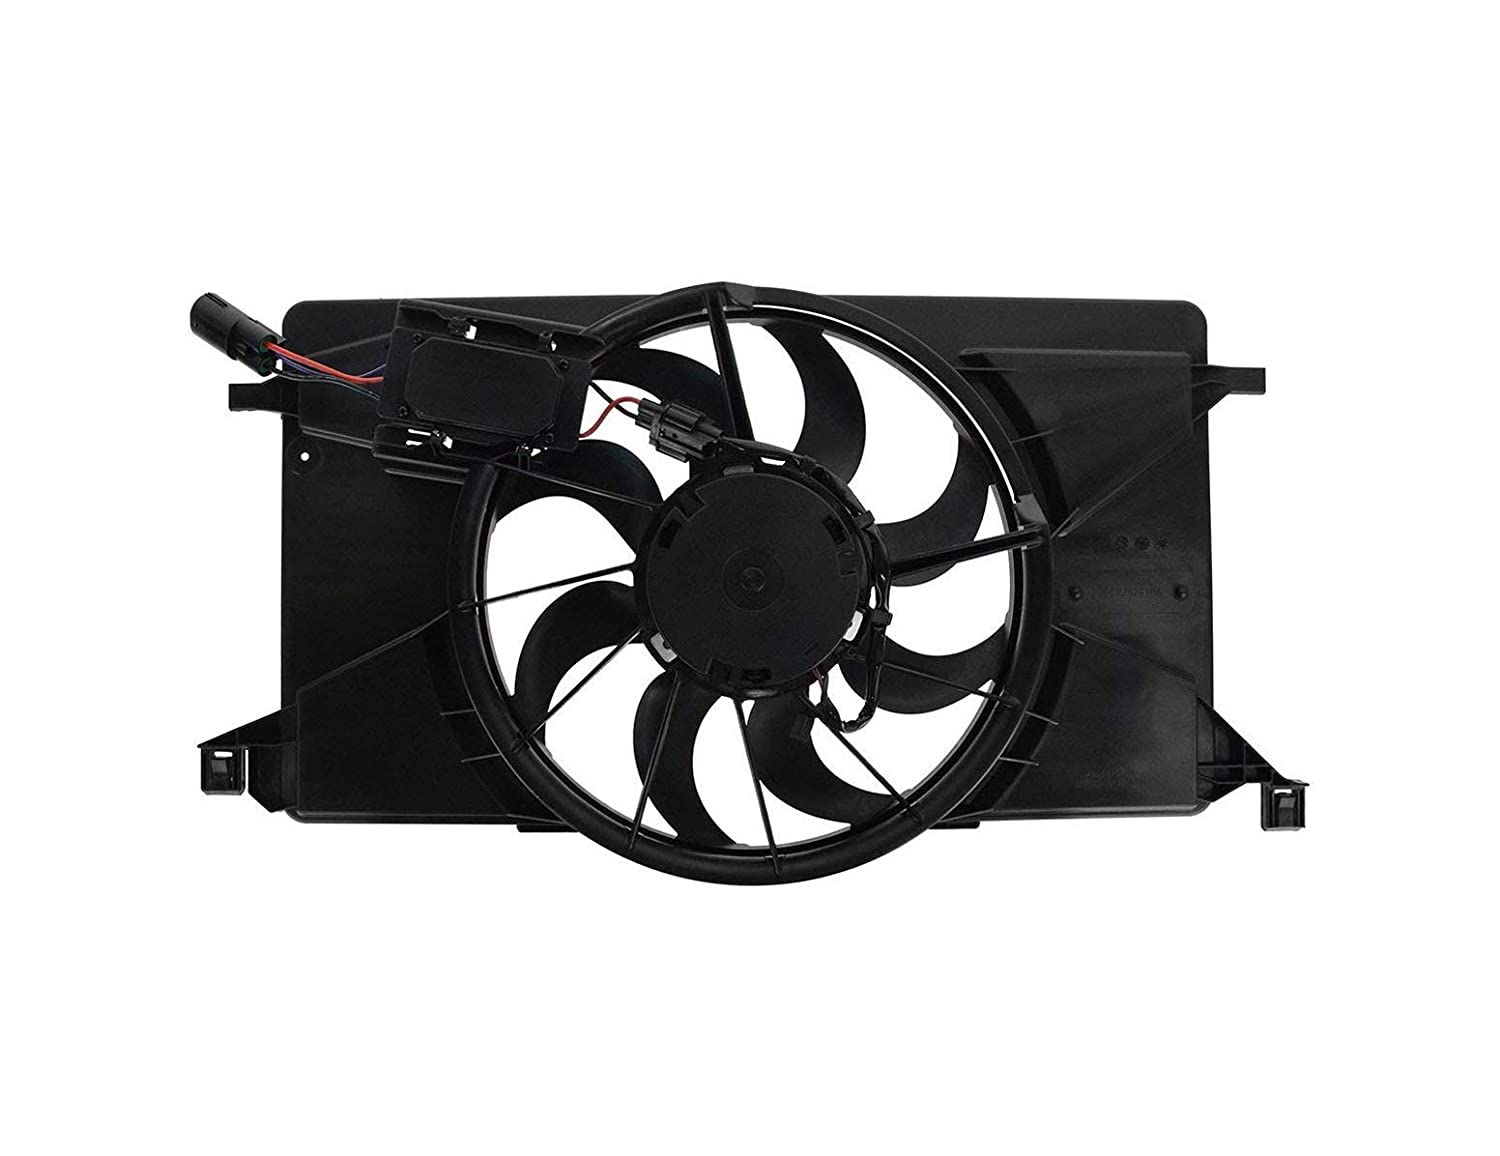 Engine Cooling Fan Assembly - Cooling Direct For/Fit FO3115189 12-18 Ford Focus 2.0L w/o Turbo